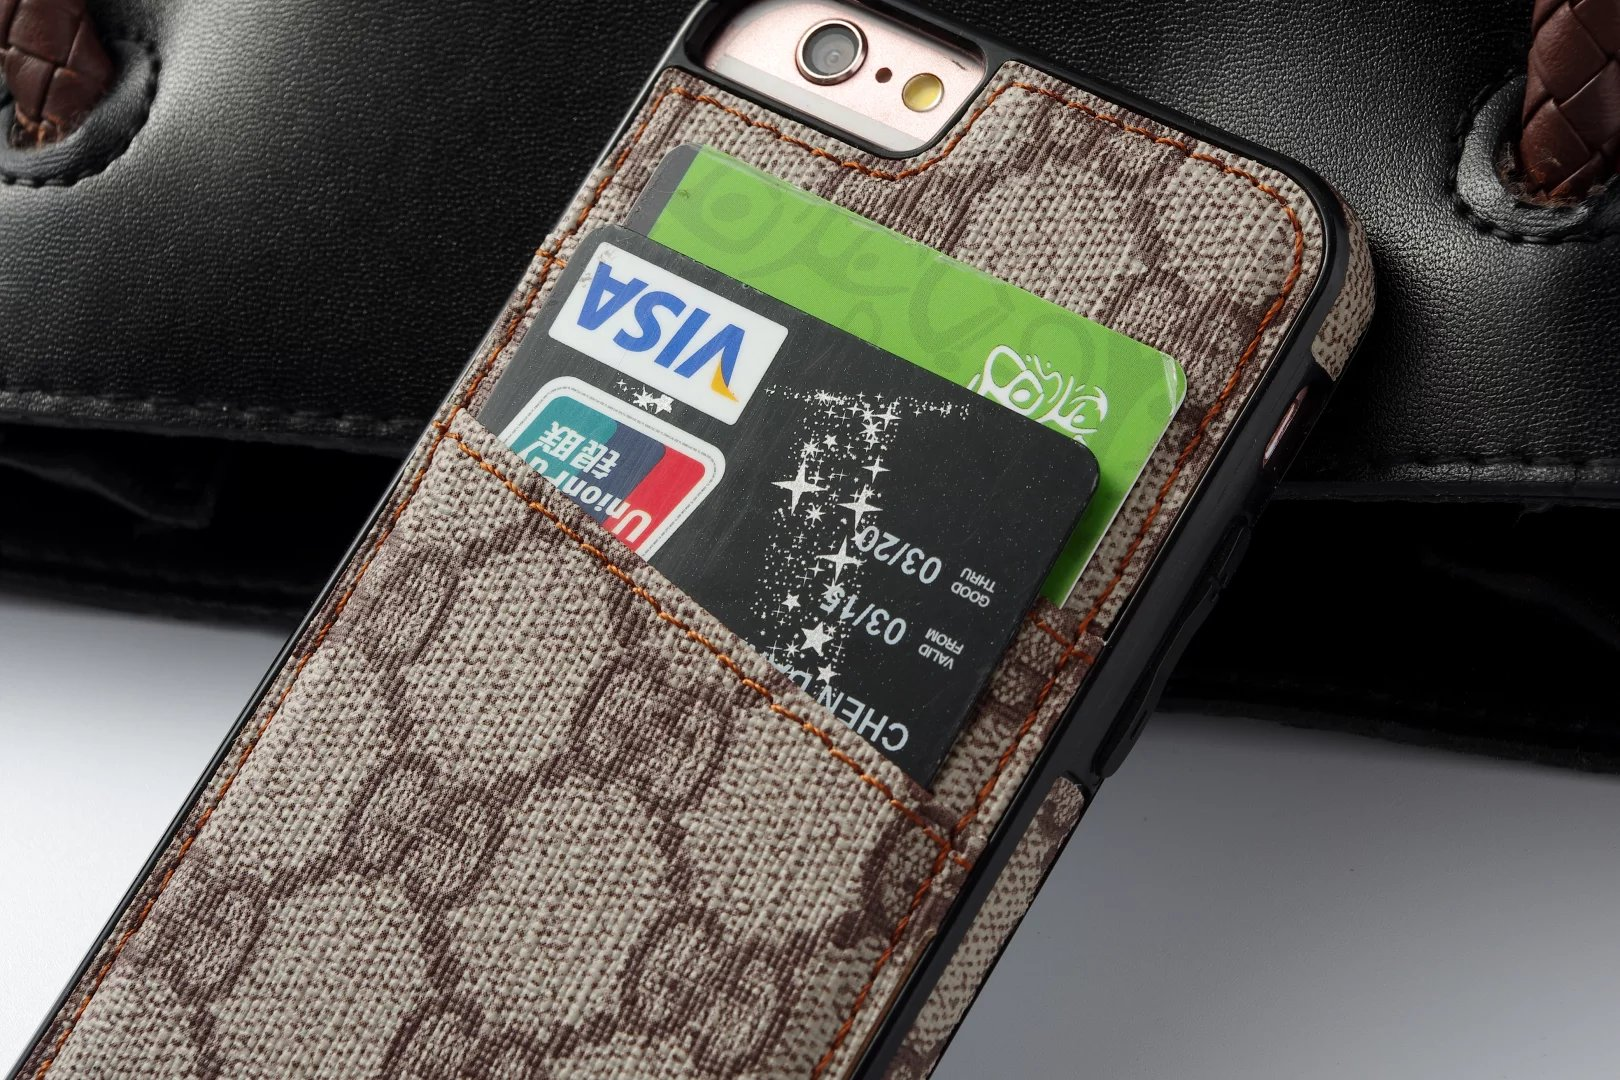 iphone hülle bedrucken lassen günstig iphone case foto Louis Vuitton iphone6 hülle iphone 6 größe iphone 6 flip ca6 eitlich apple iphone 6 over iphone tasche handyhülle mit foto was kann das iphone 6 alles